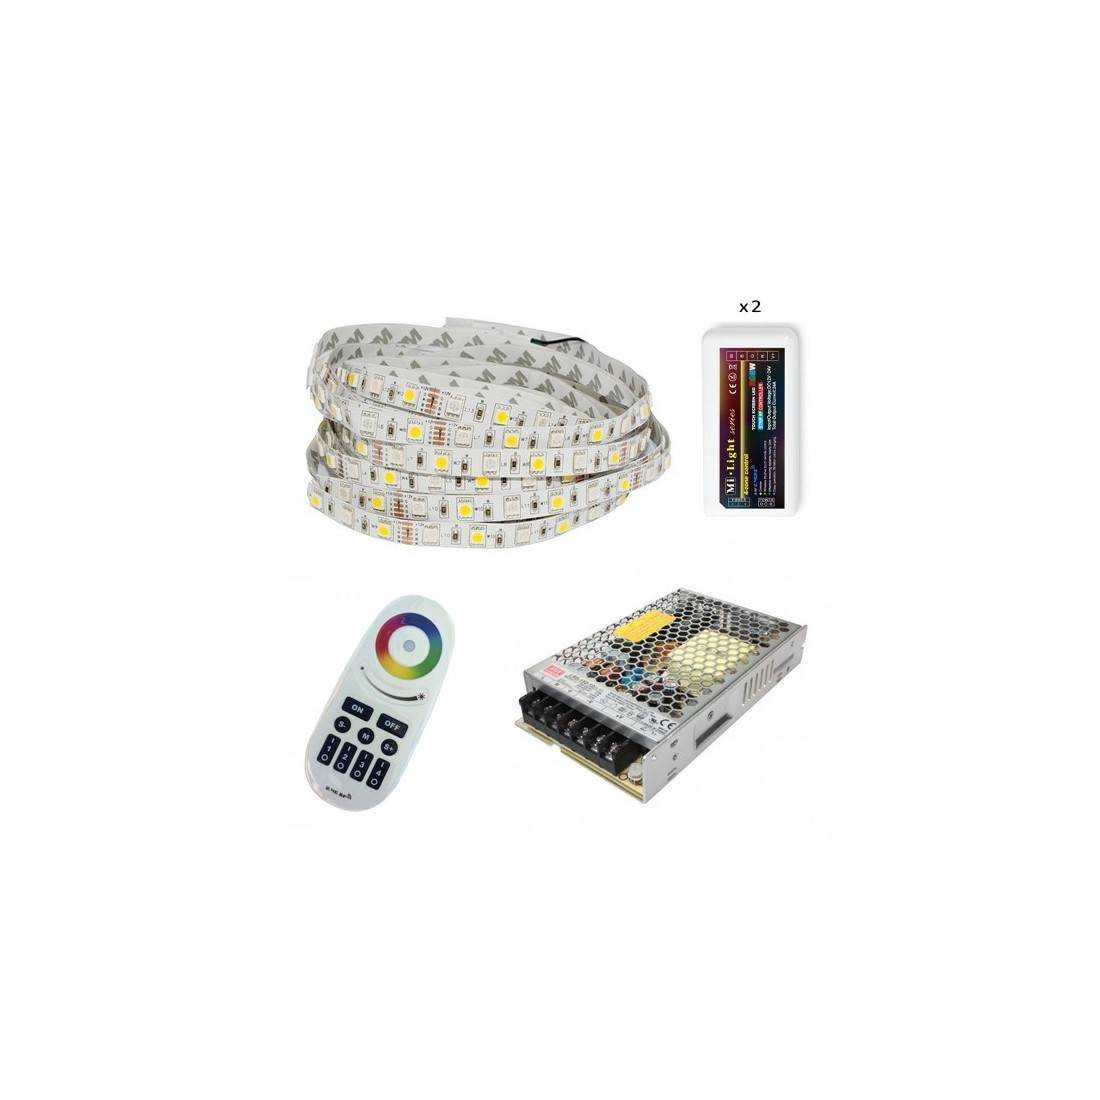 Pack ruban LED RGB+W - Tactile - Fils - 20m